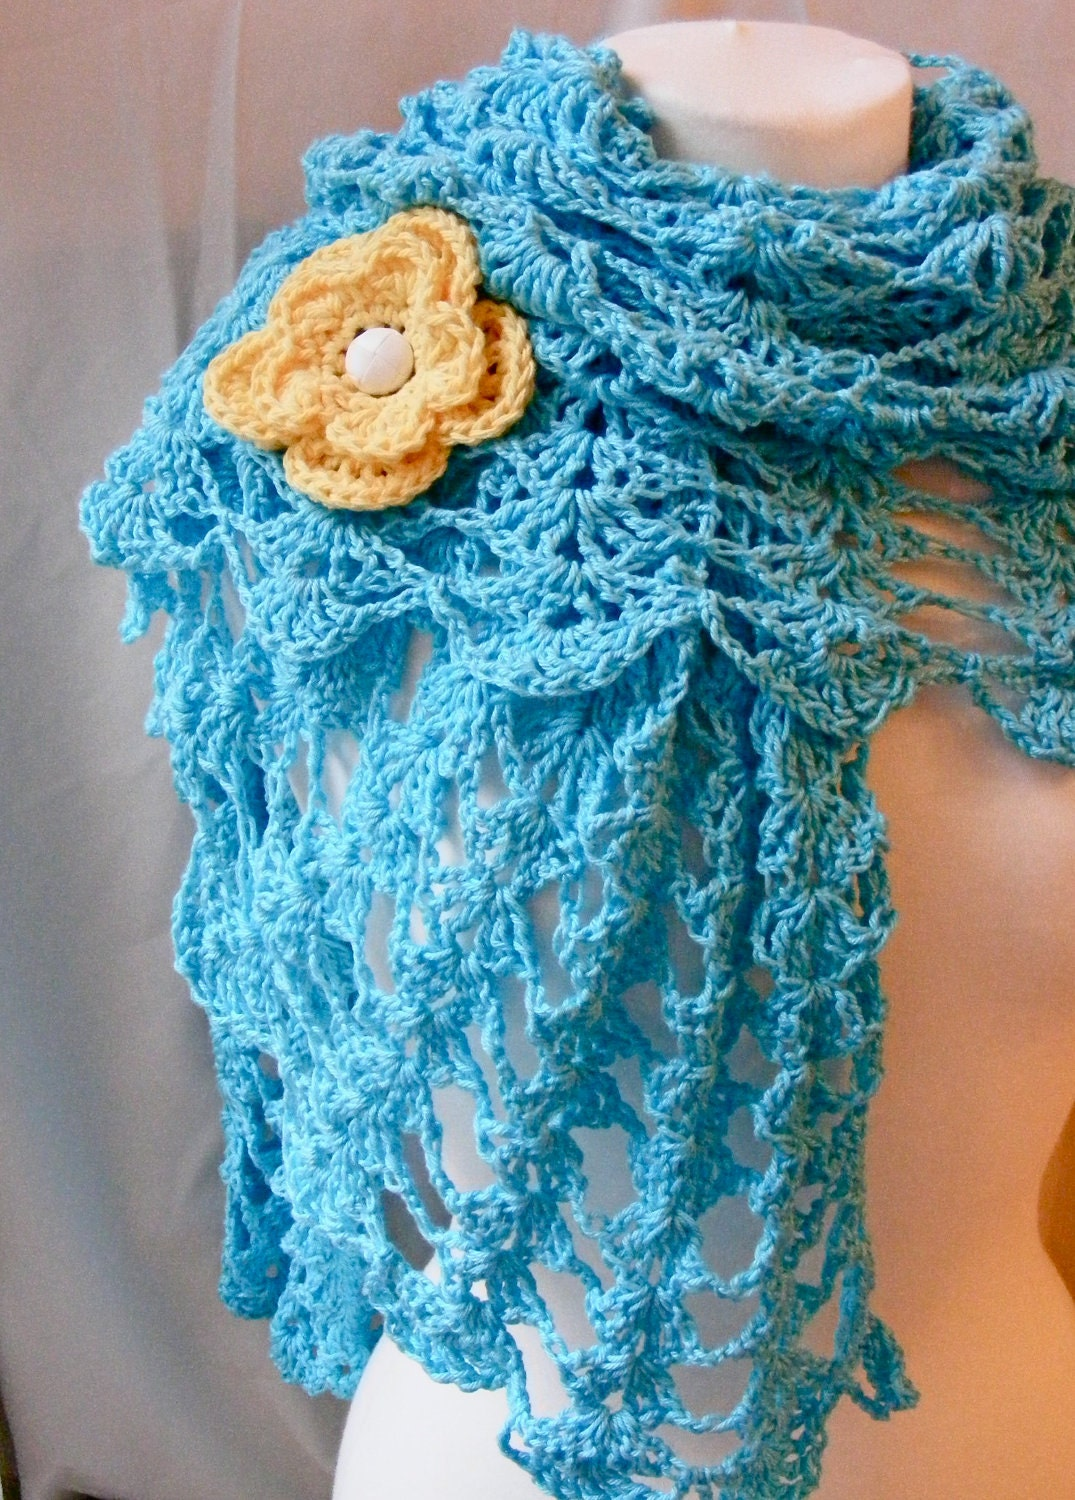 Crochet A Shawl Easy Pattern : Shawl Crochet Pattern Ladies Summer Openwork by ...